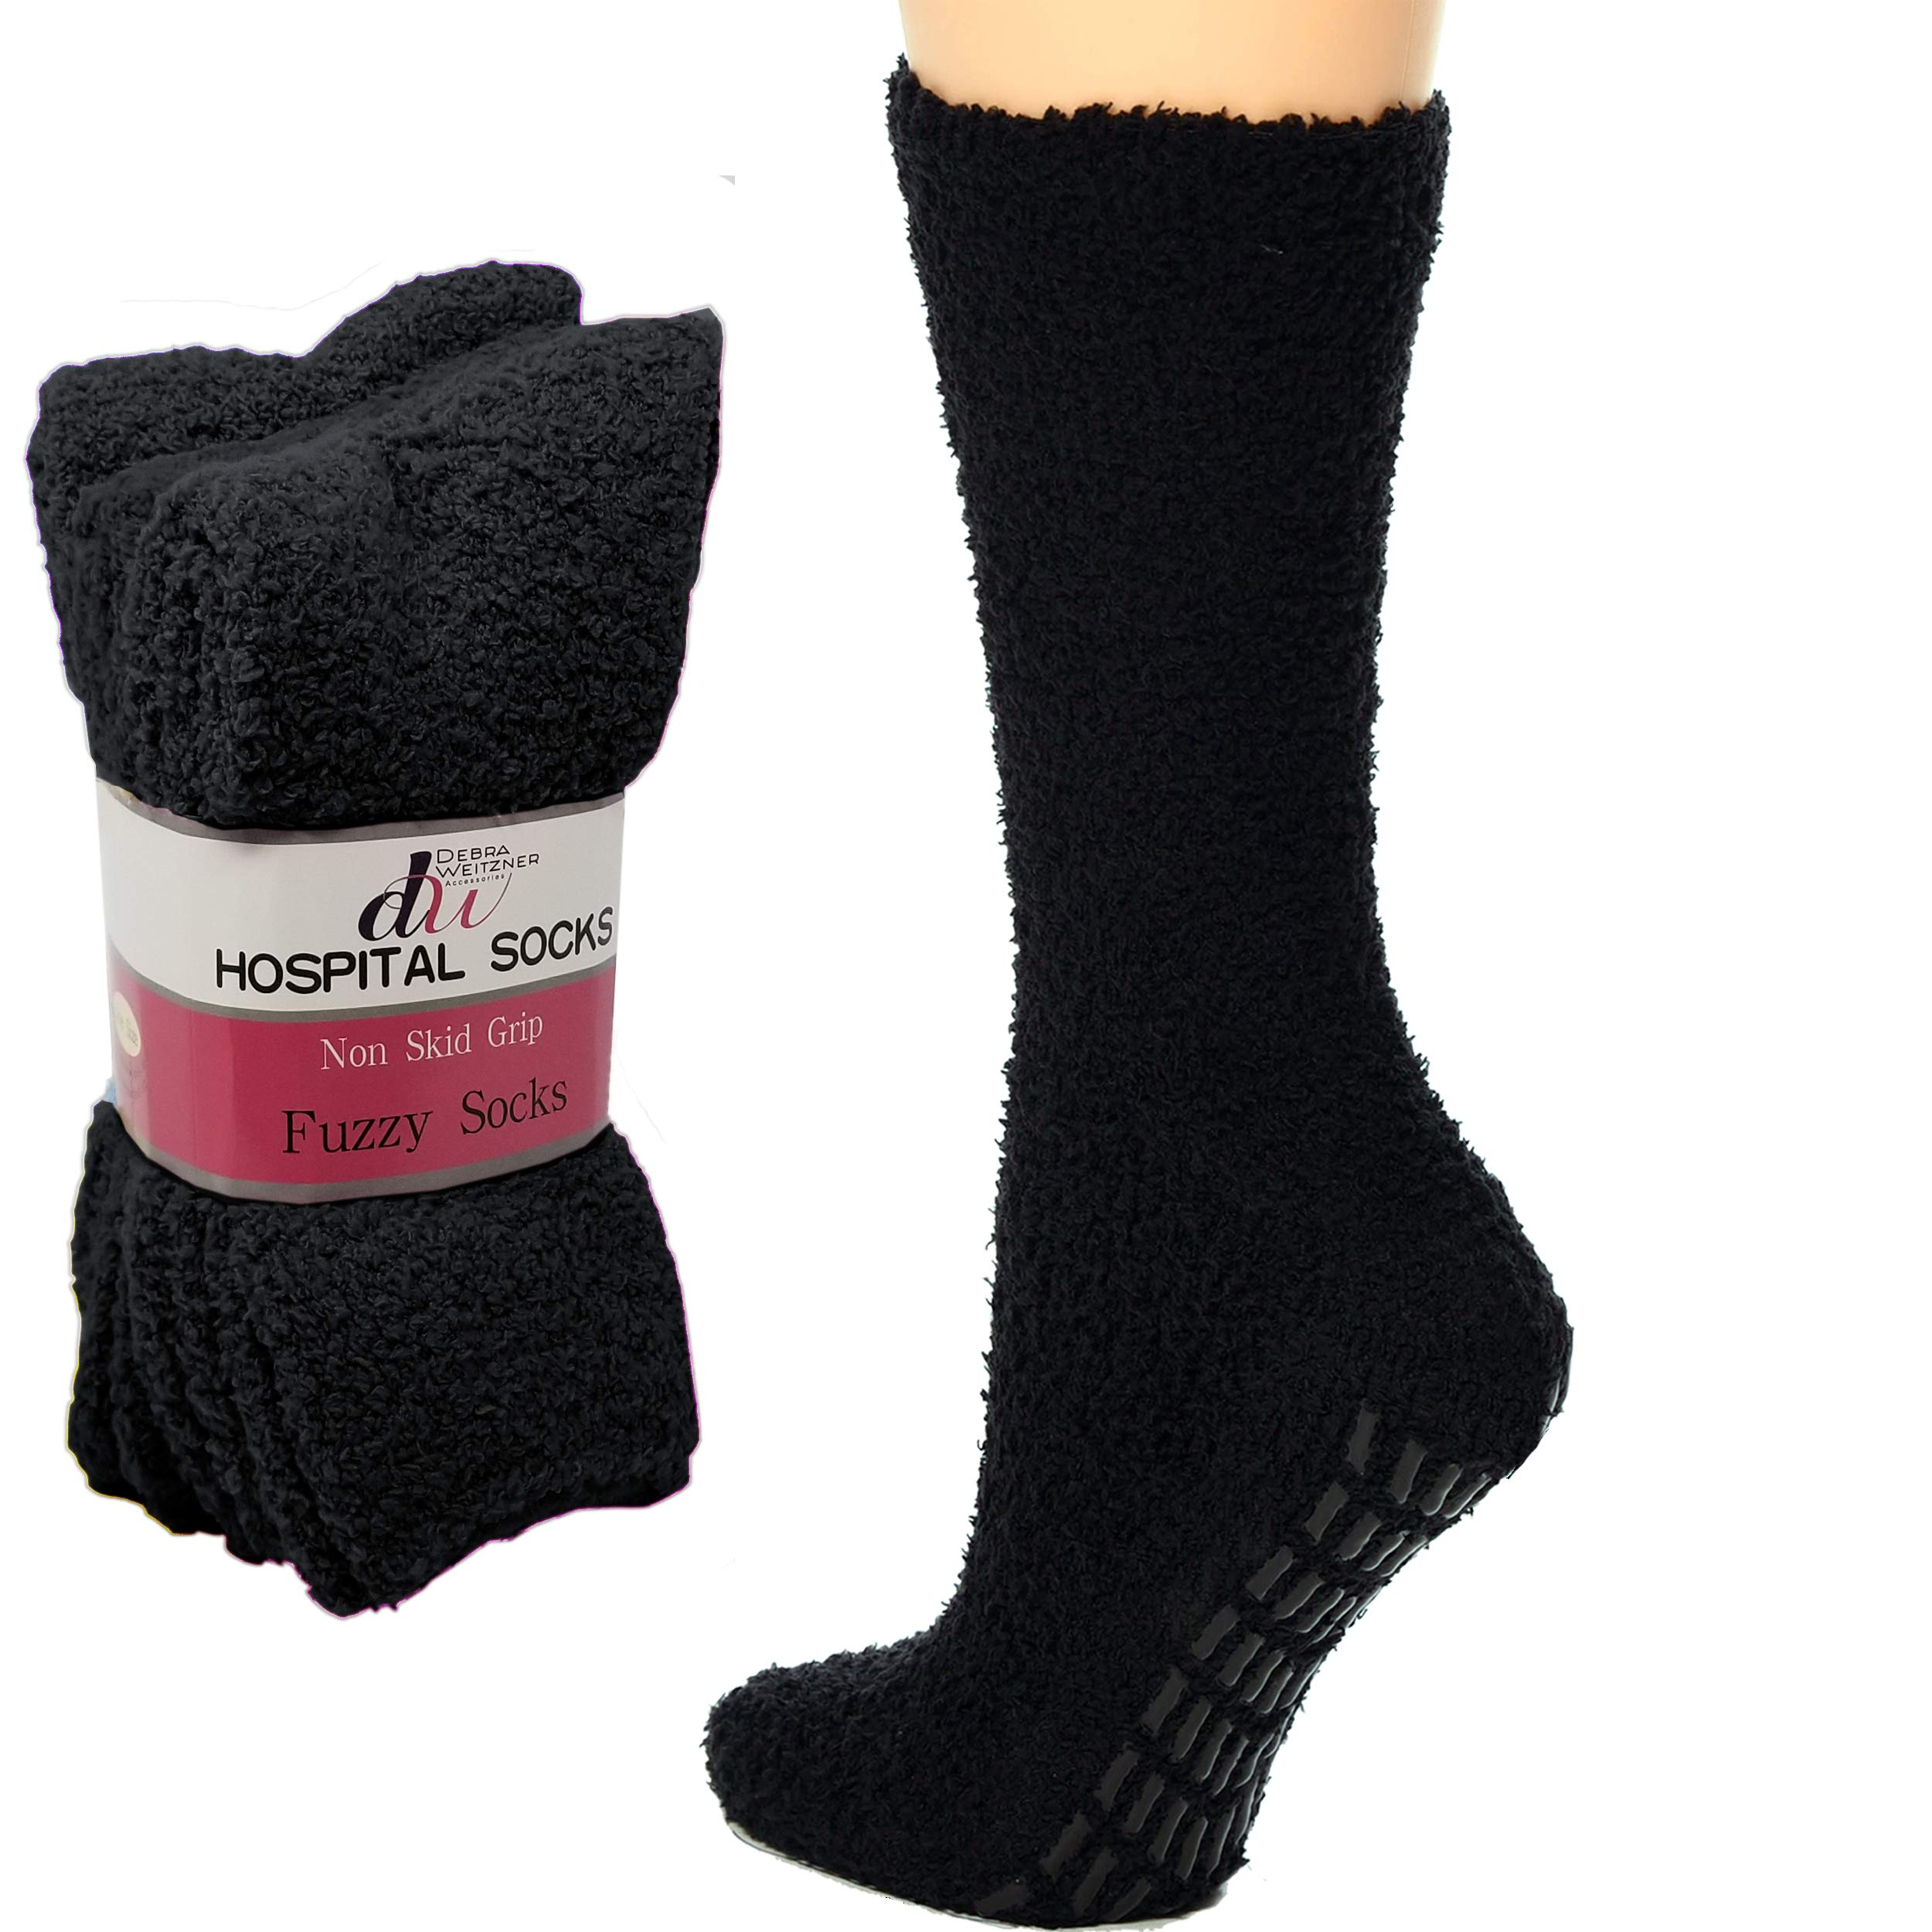 Non Skid Hospital Socks For Women Men Cozy Fuzzy Socks 3 Pairs Buy Online In Barbados Missing Category Value Products In Barbados See Prices Reviews And Free Delivery Over Bds 150 Desertcart